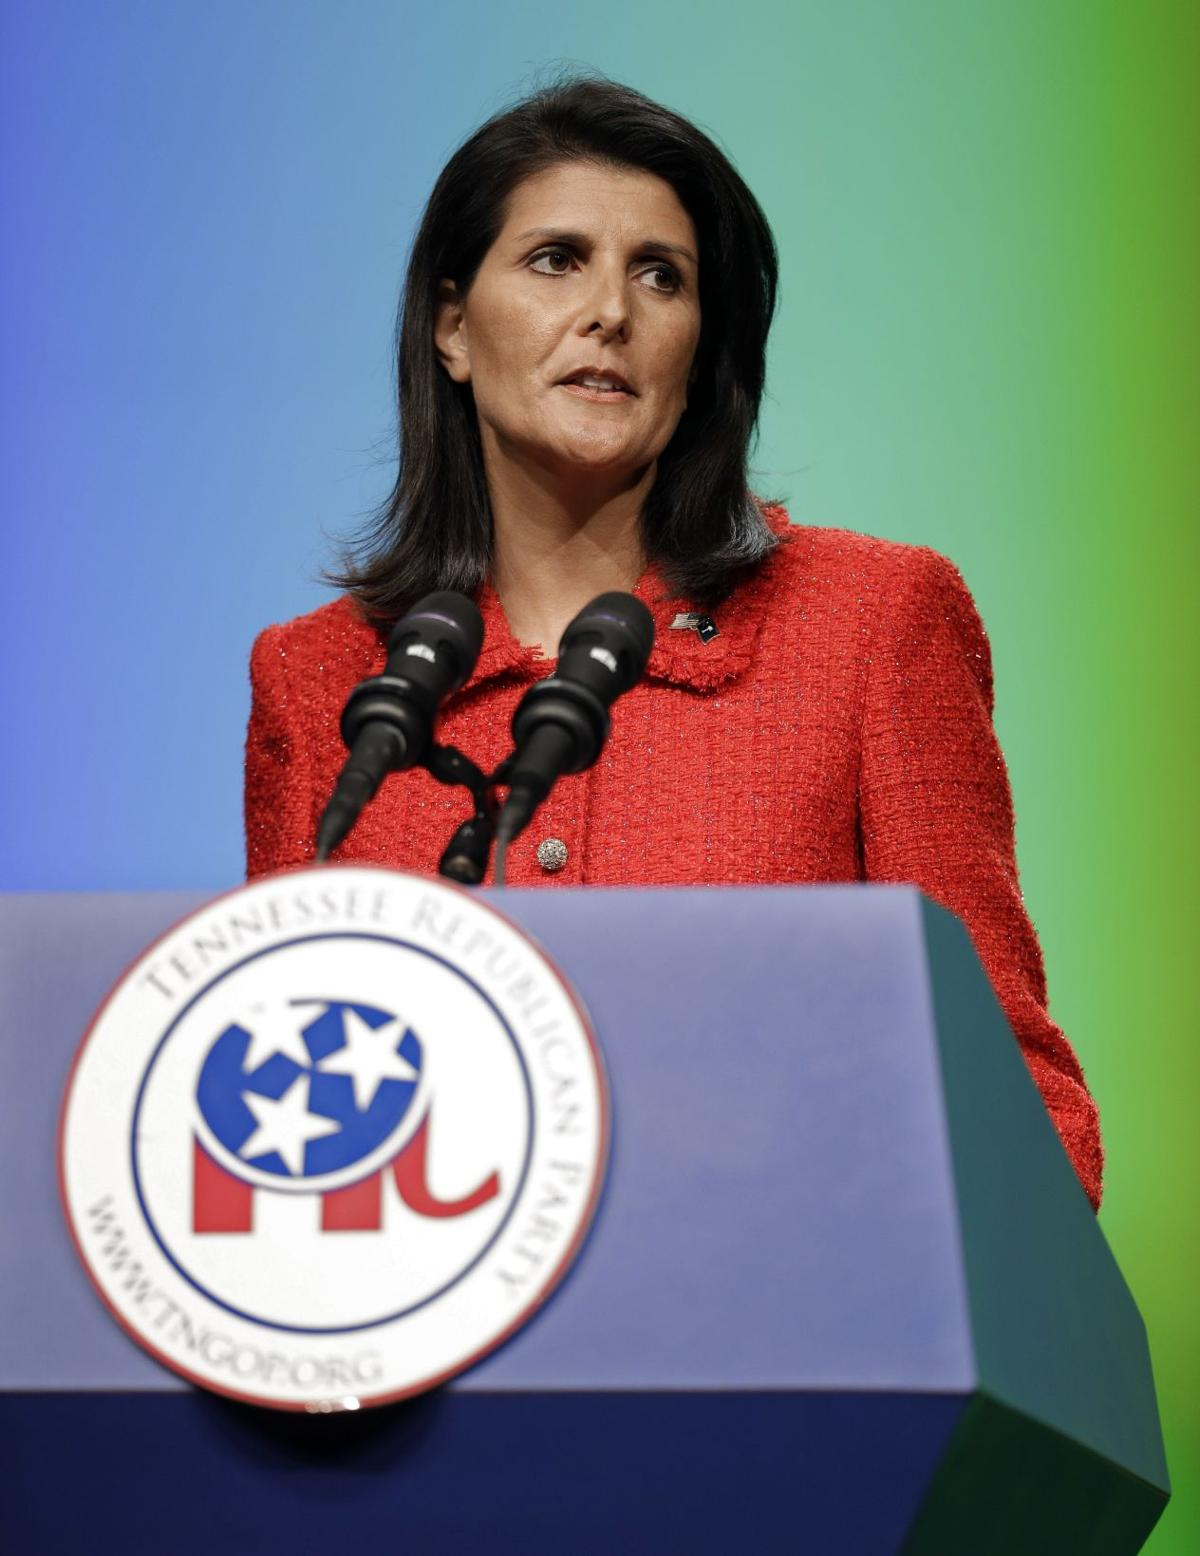 Gov. Haley campaigns, raises funds for governor candidate in Missouri